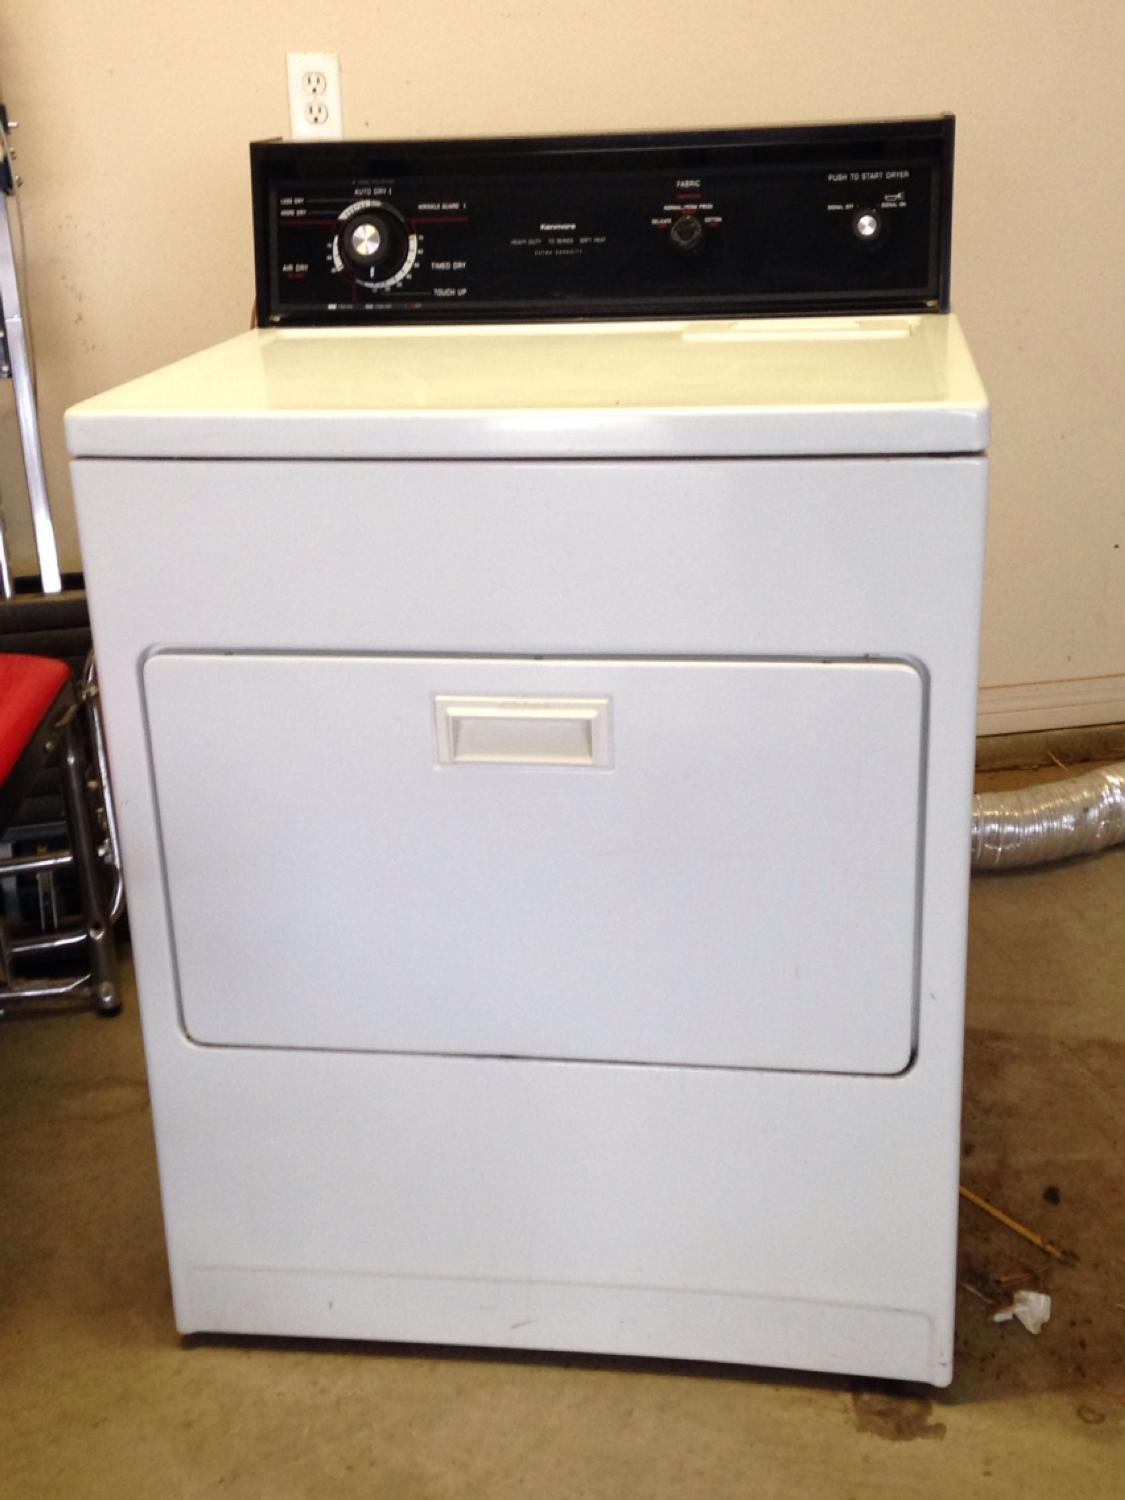 Best Electric Clothes Dryer For Sale In Amarillo Texas